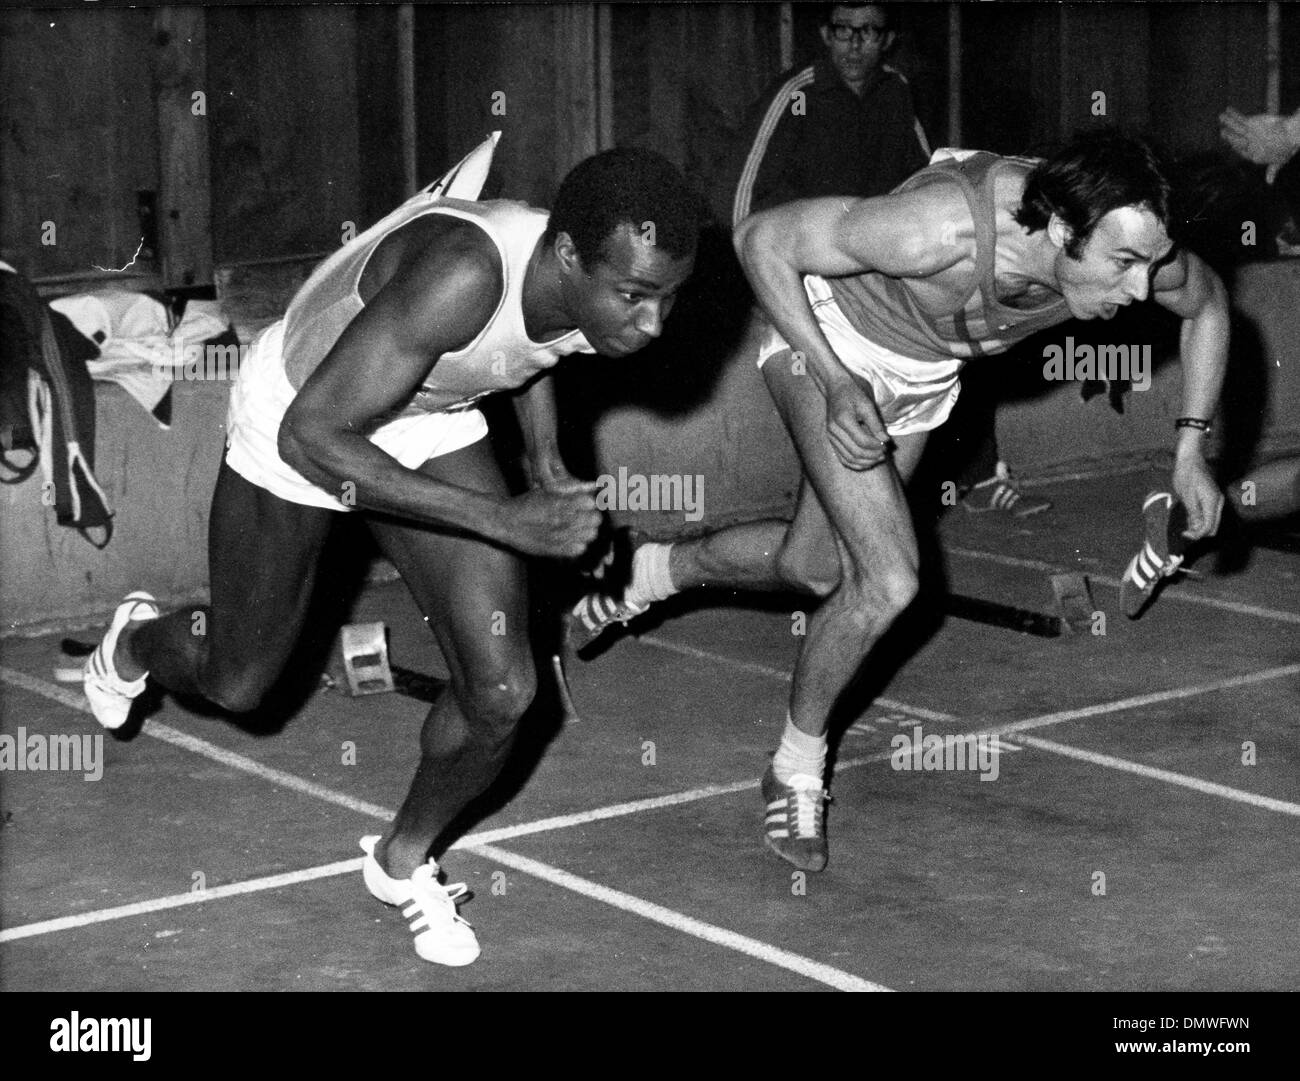 Jun 31, 1968; Paris, France; Runner ROGER BAMBUCK. (Credit Image: © KEYSTONE Pictures USA) - Stock Image